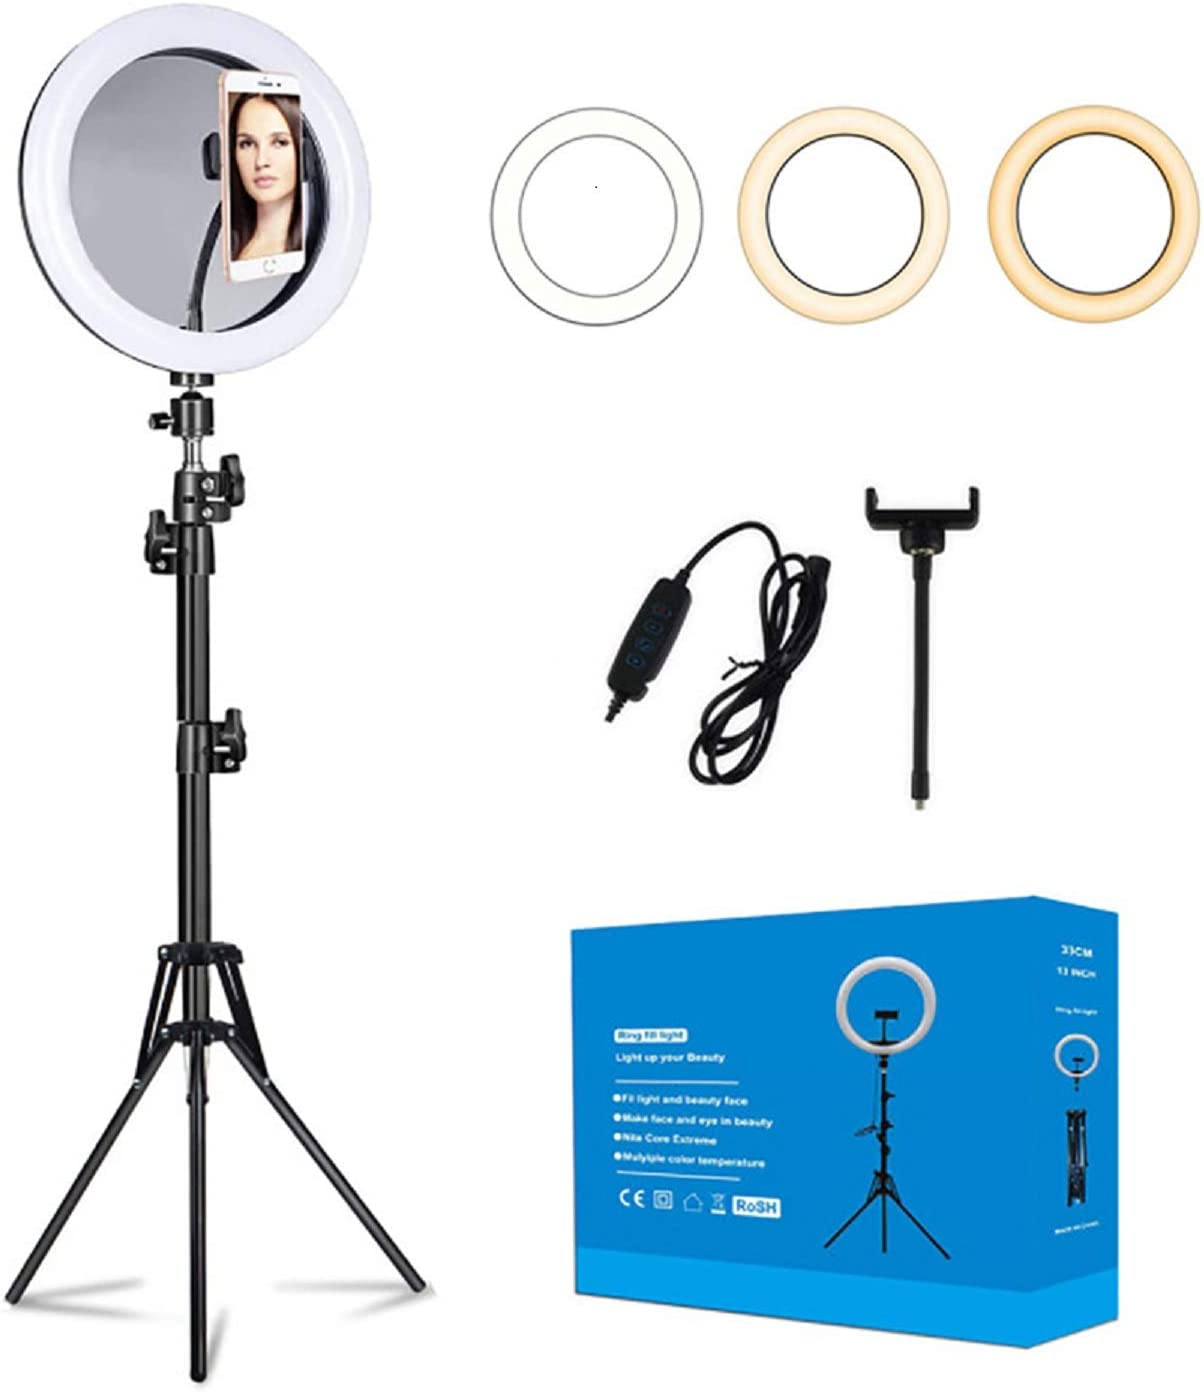 AW 13inch LED Ring Light RGB Dimmable Brightness with Tripod Stand Phone Holder Remote for Live Streaming Makeup YouTube Photography